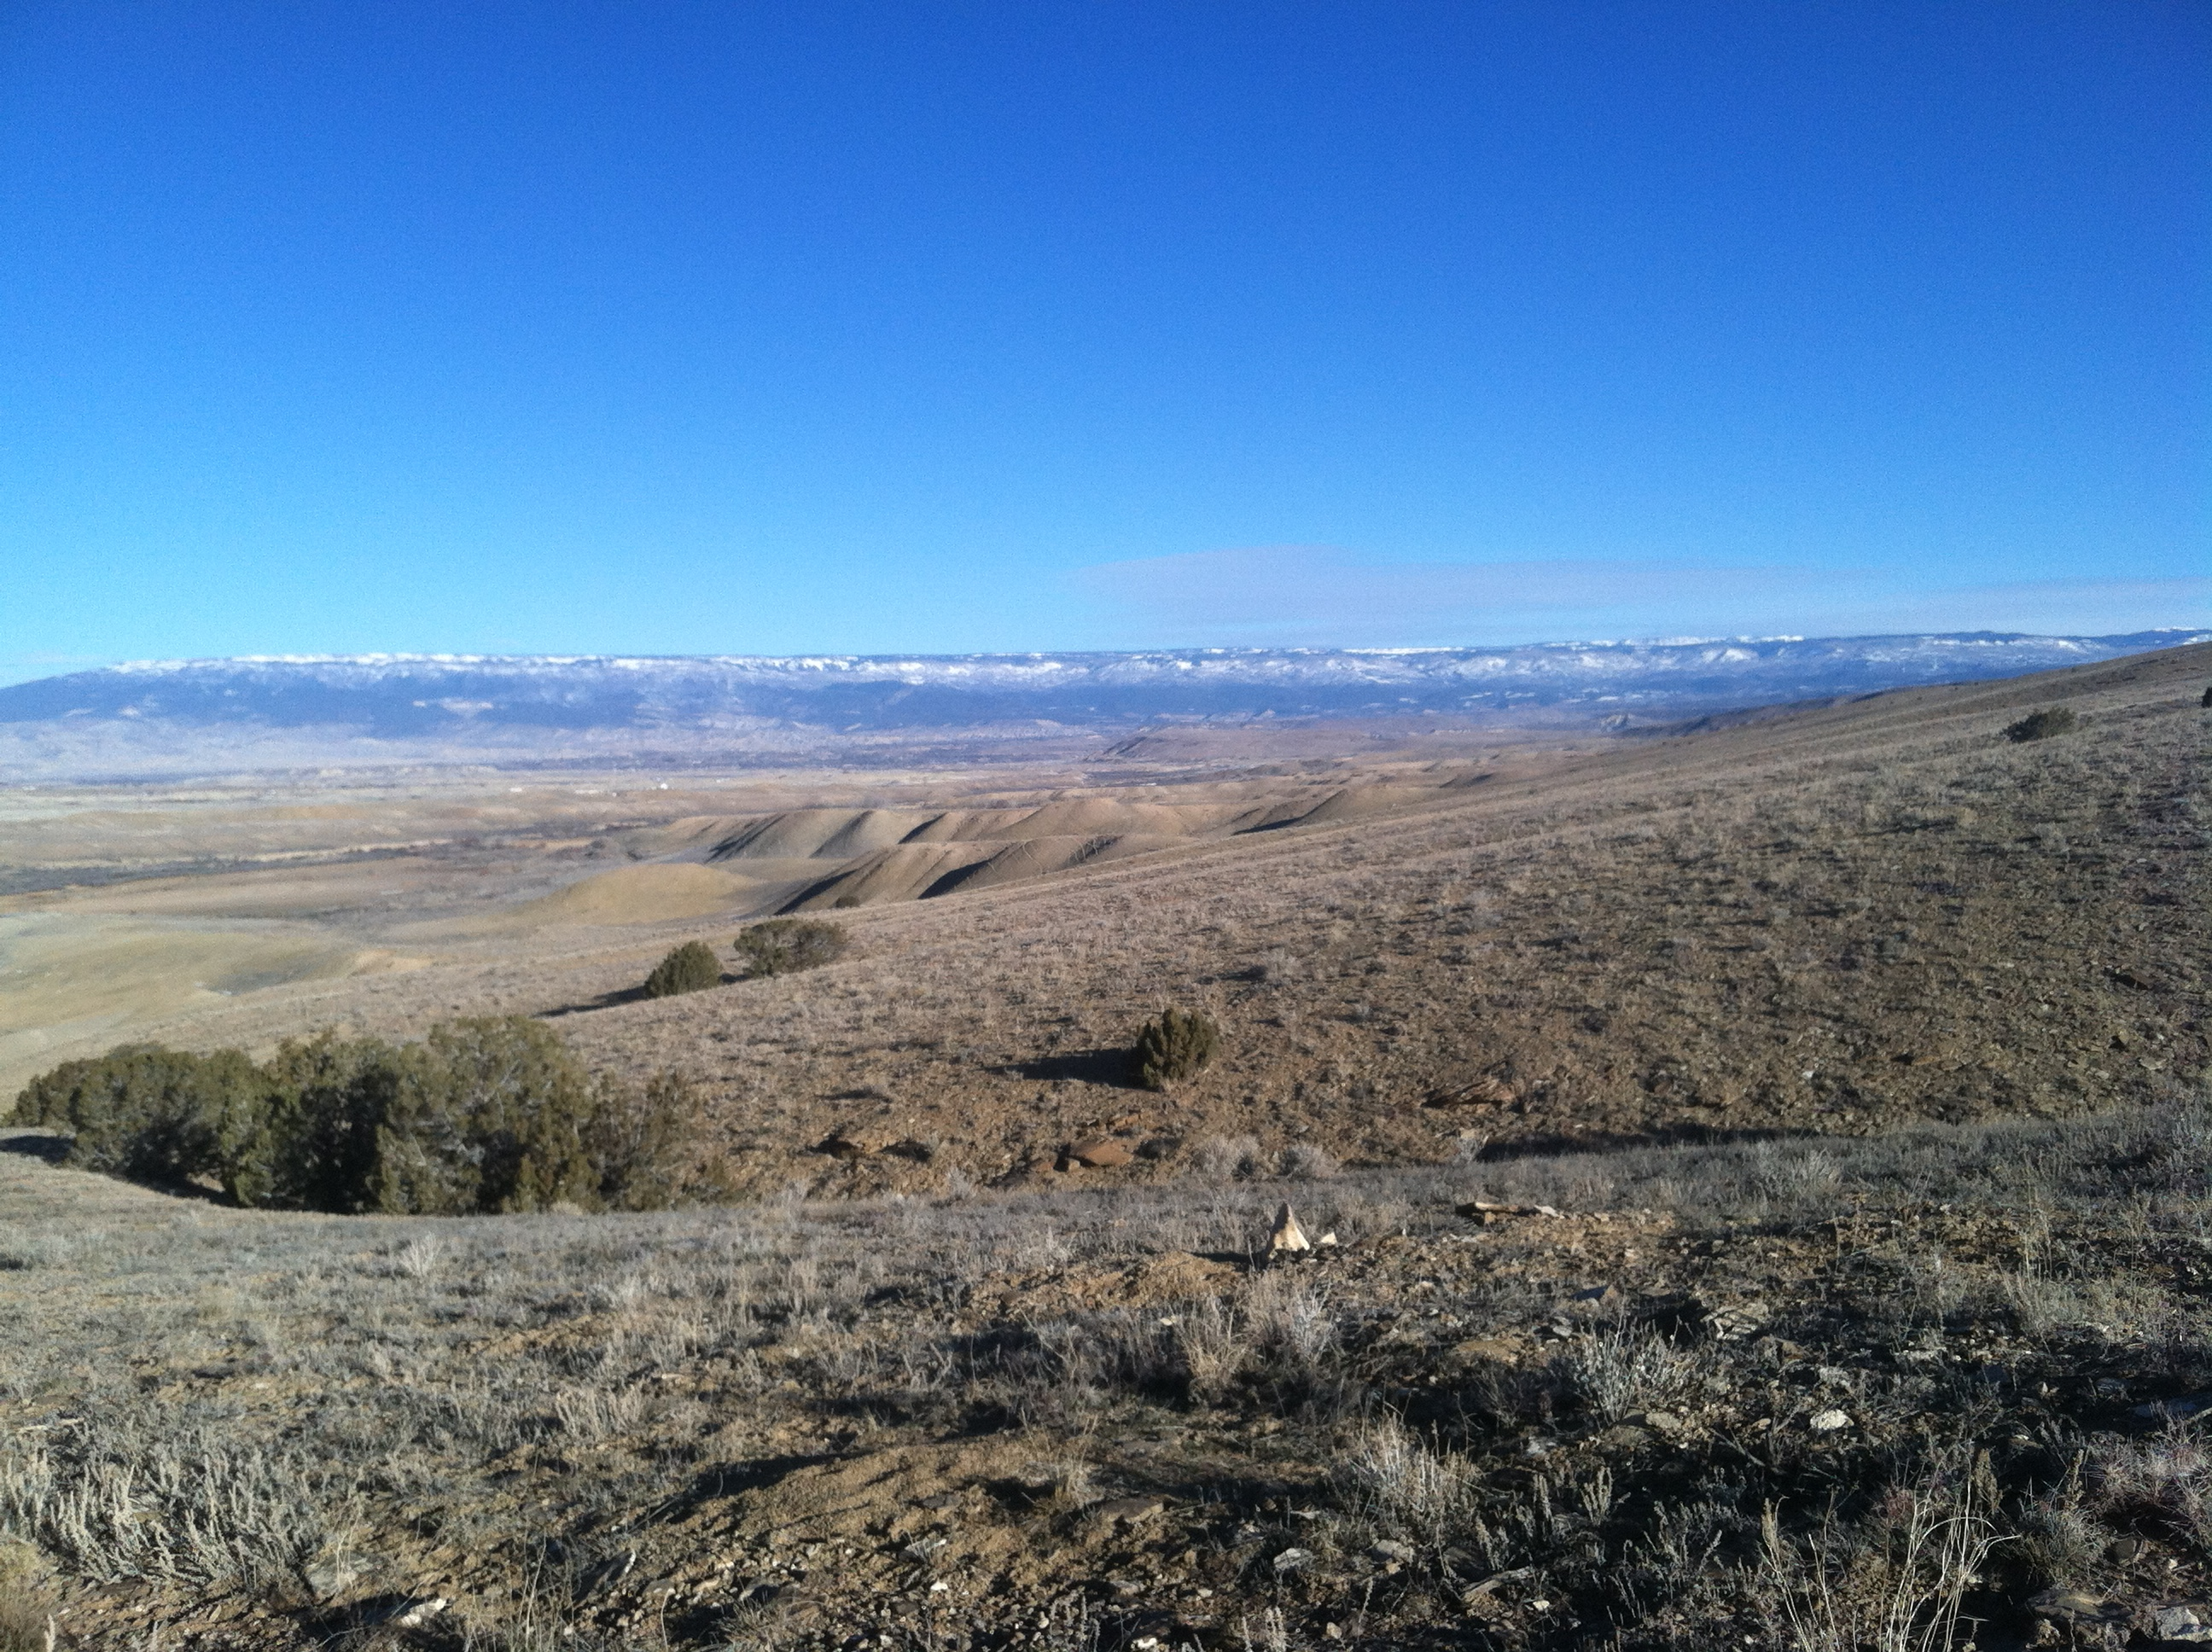 Looking north at the Grand Mesa. Yup, all of that snow tops the 10k ft tall flat mountain.